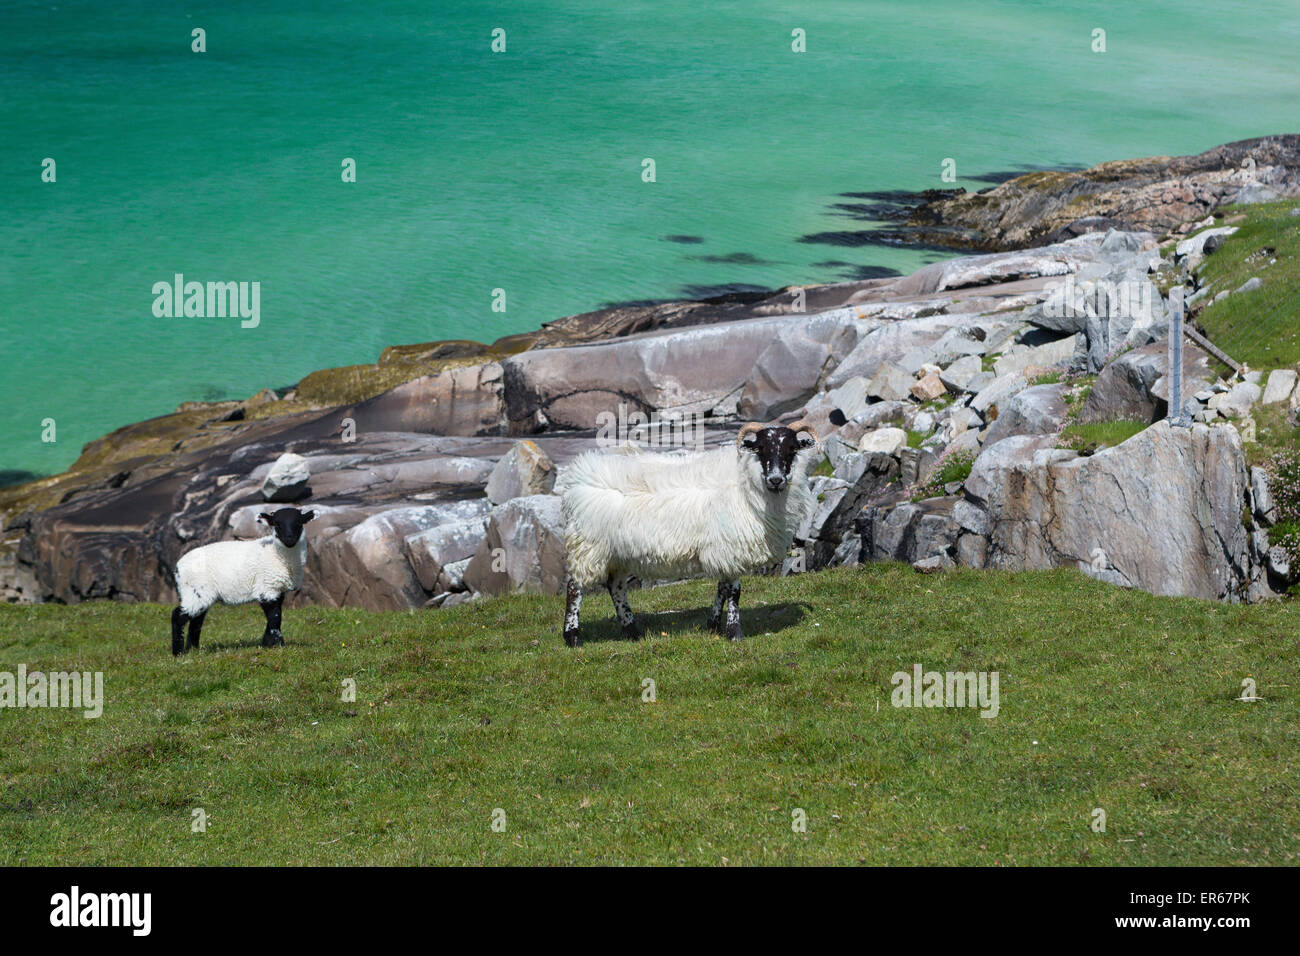 Scottish sheep as found on the Isle of Lewis and Harris, Outer Hebrides, Scotland - Stock Image